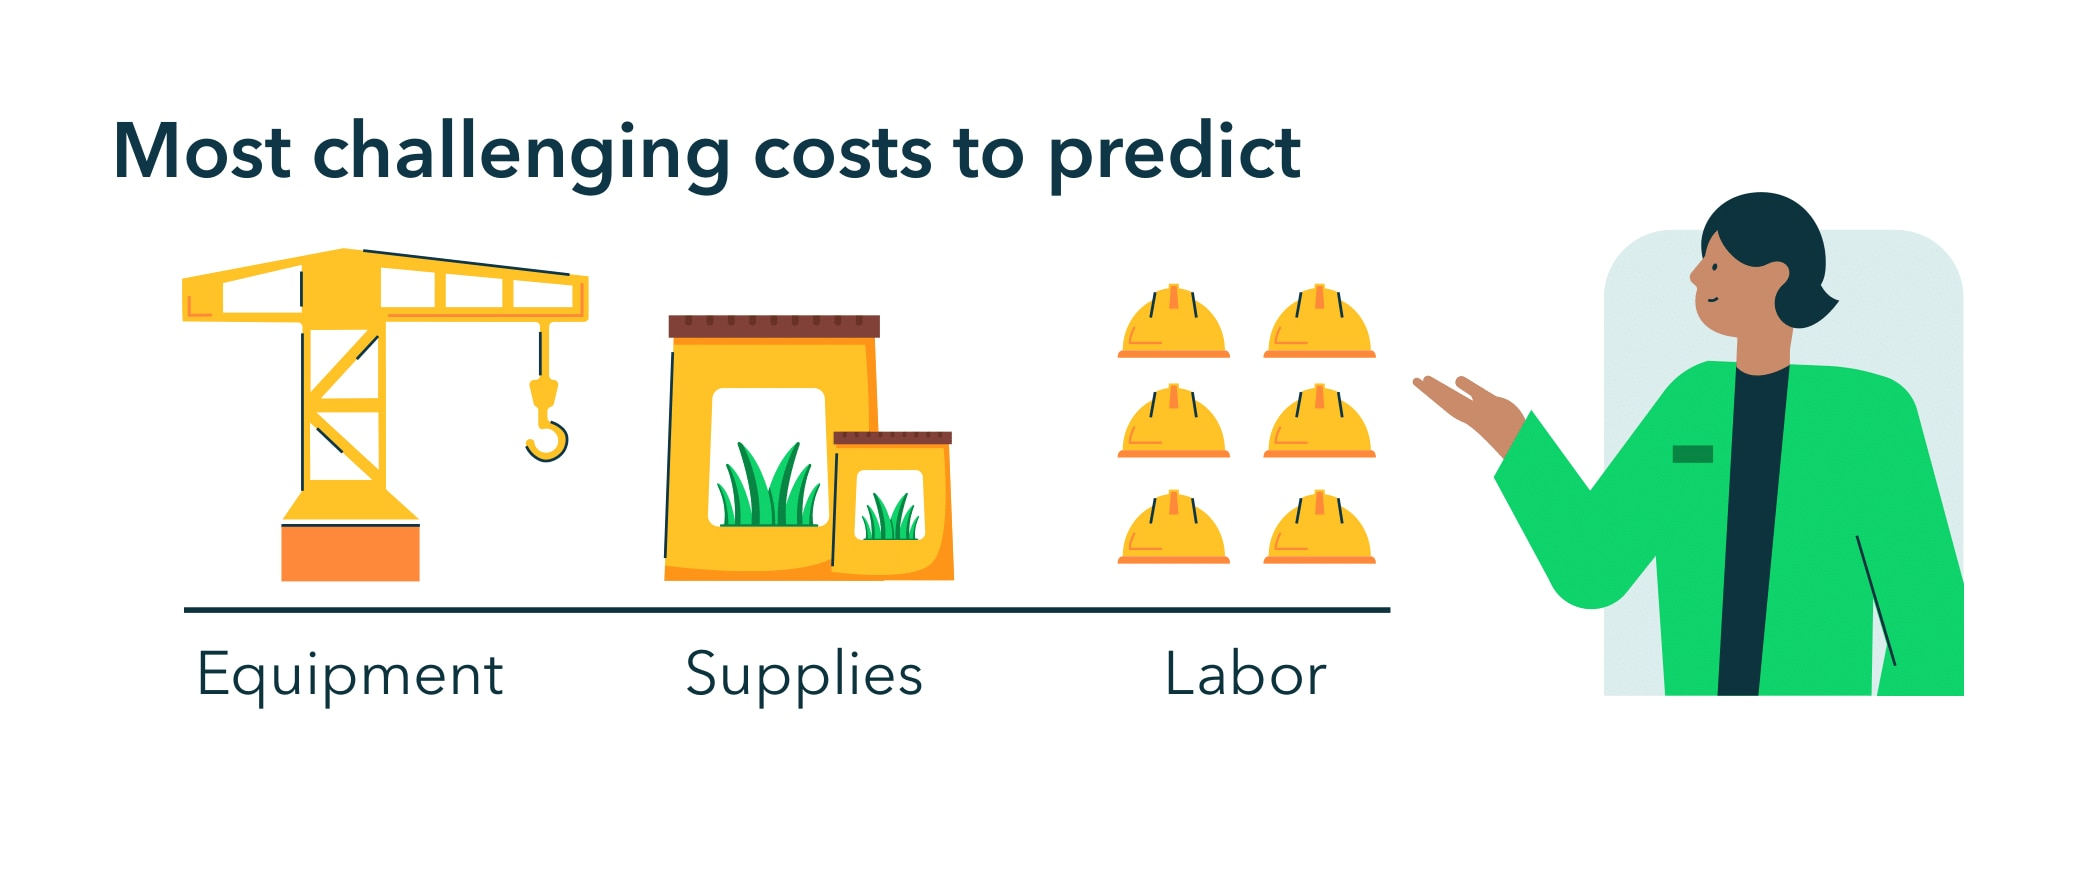 The most challenging costs to predict are equipment costs, cost of supplies, and labor costs.